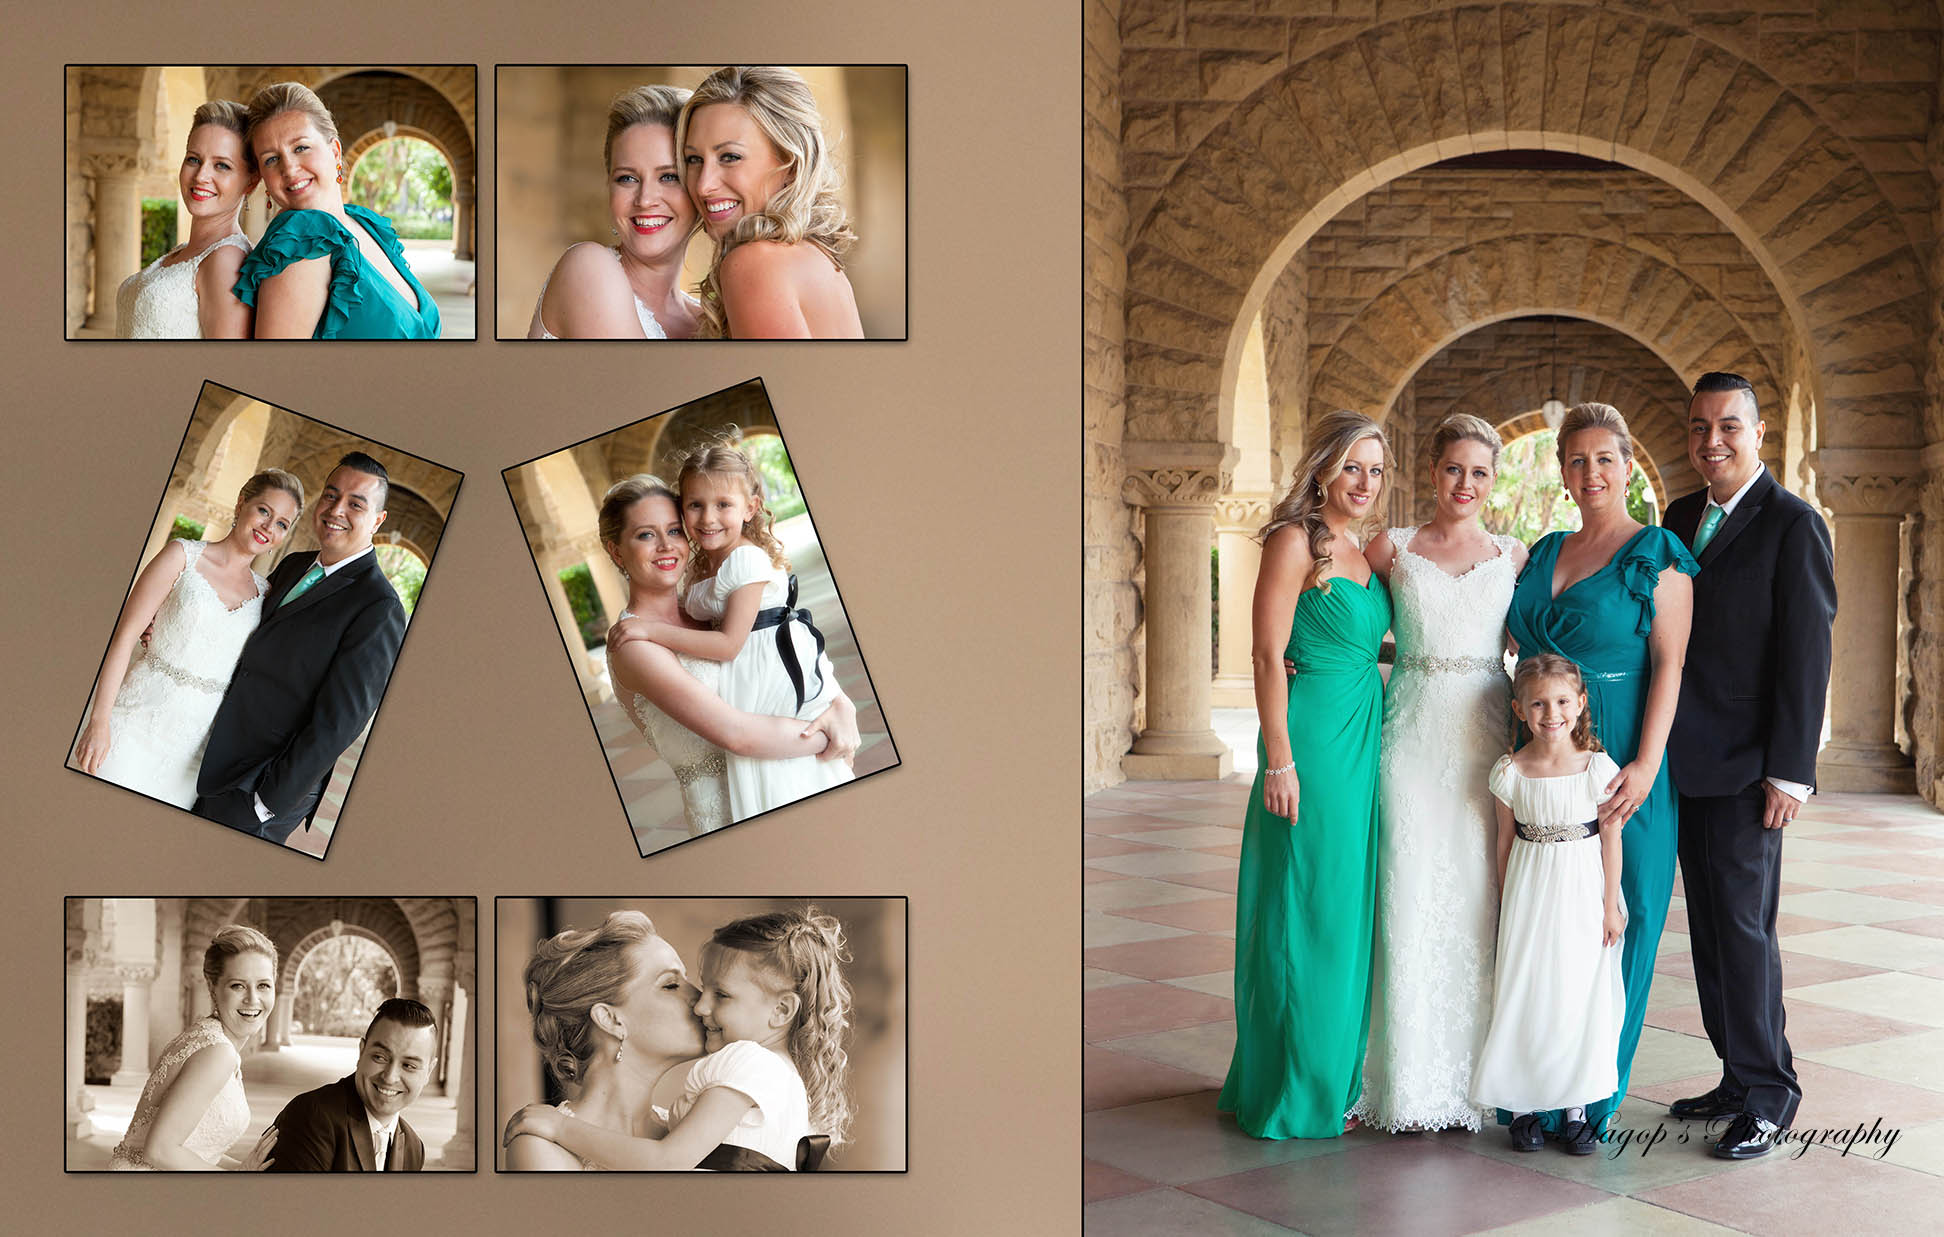 composite photo of the bride with her bridal party